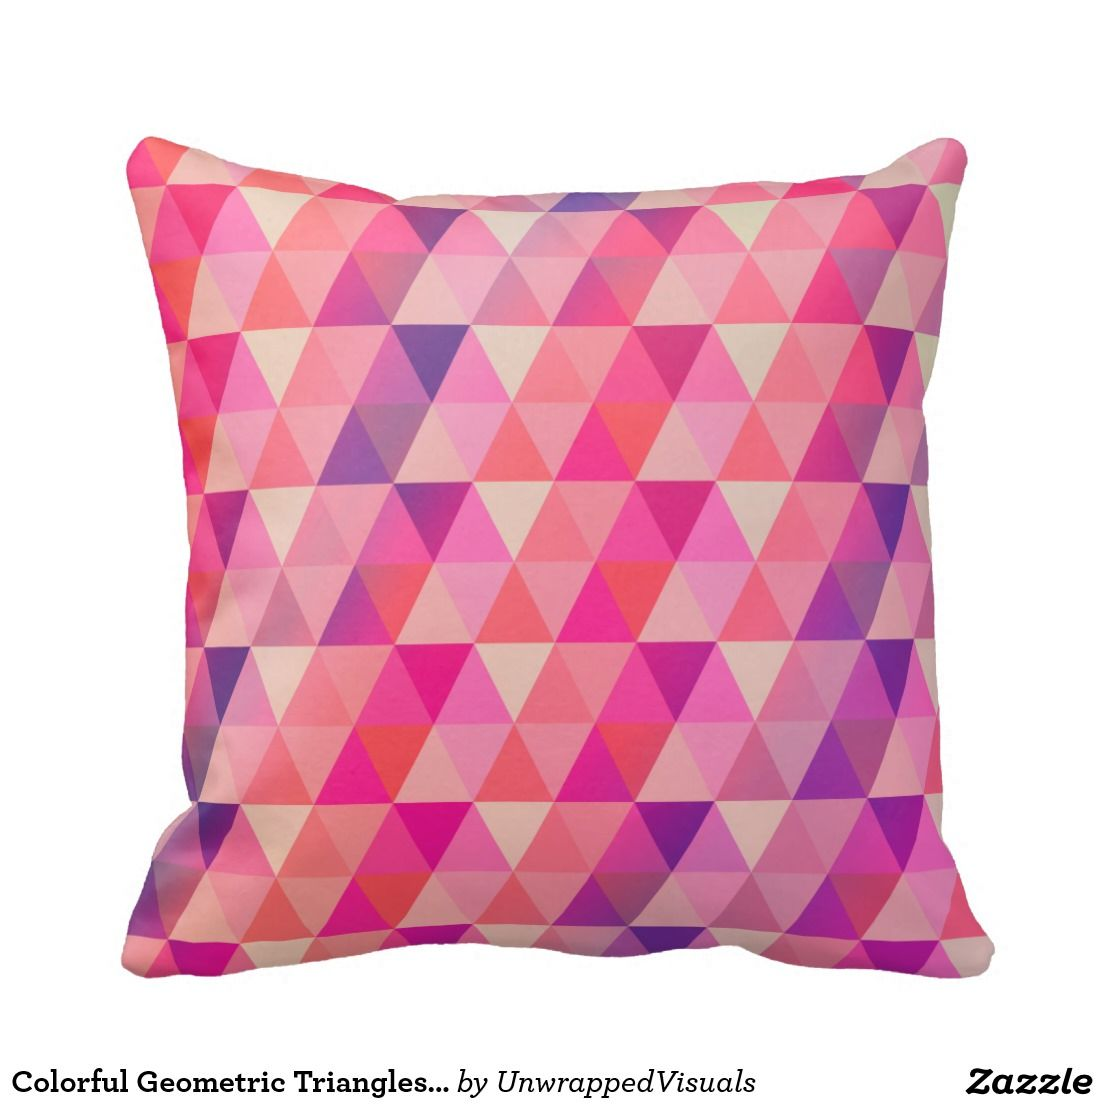 Colorful Geometric Triangles Pattern Pillows